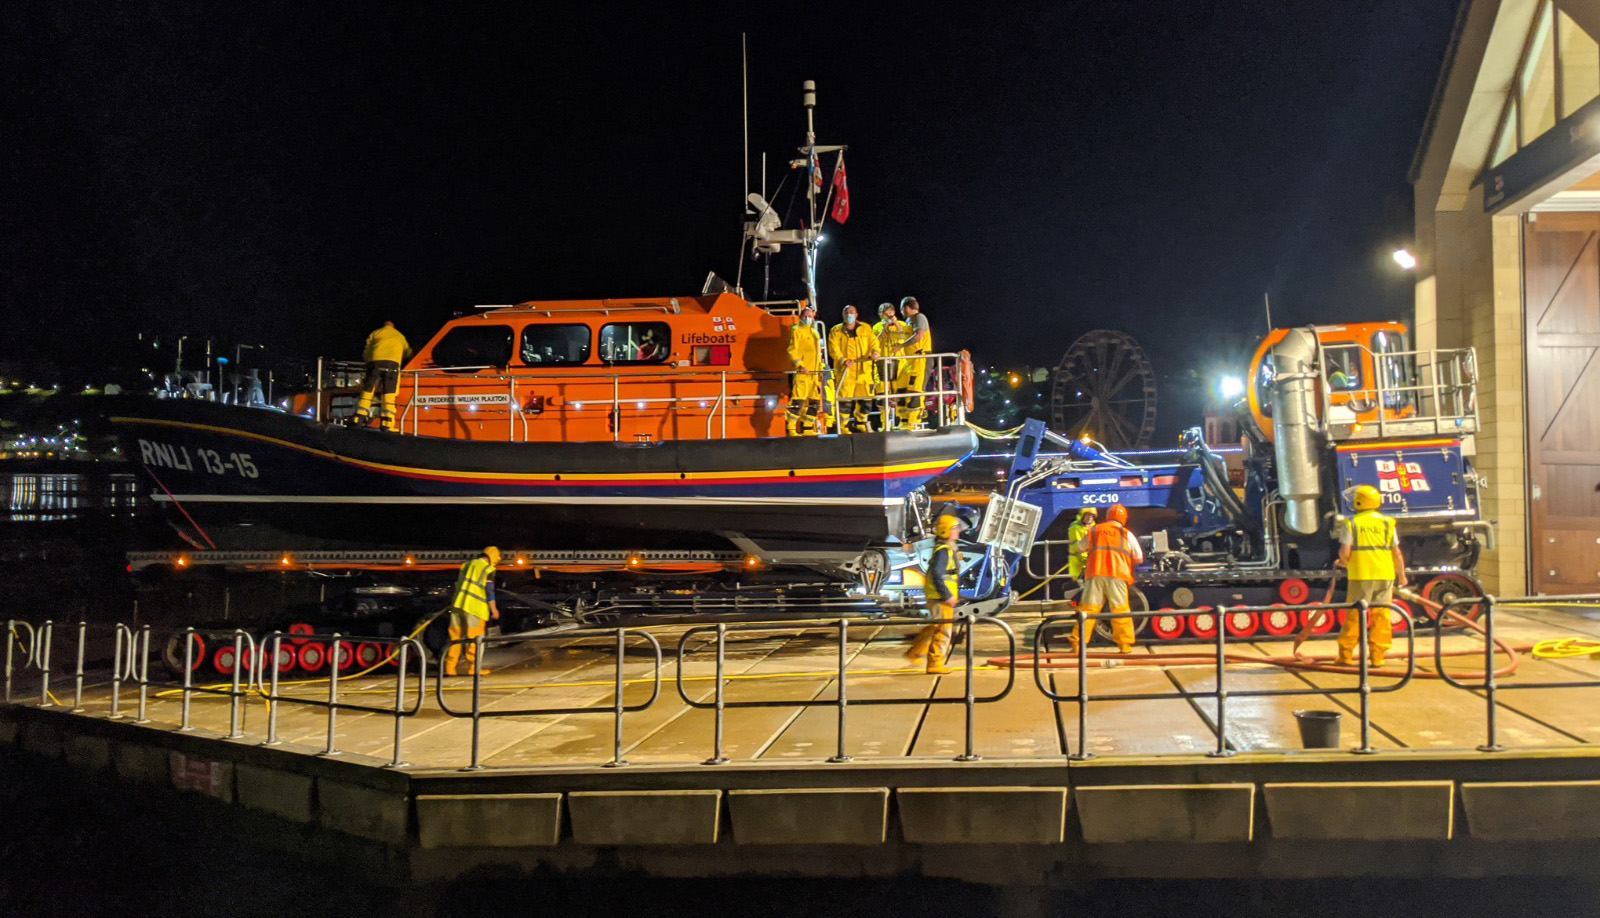 The Shannon is recovered